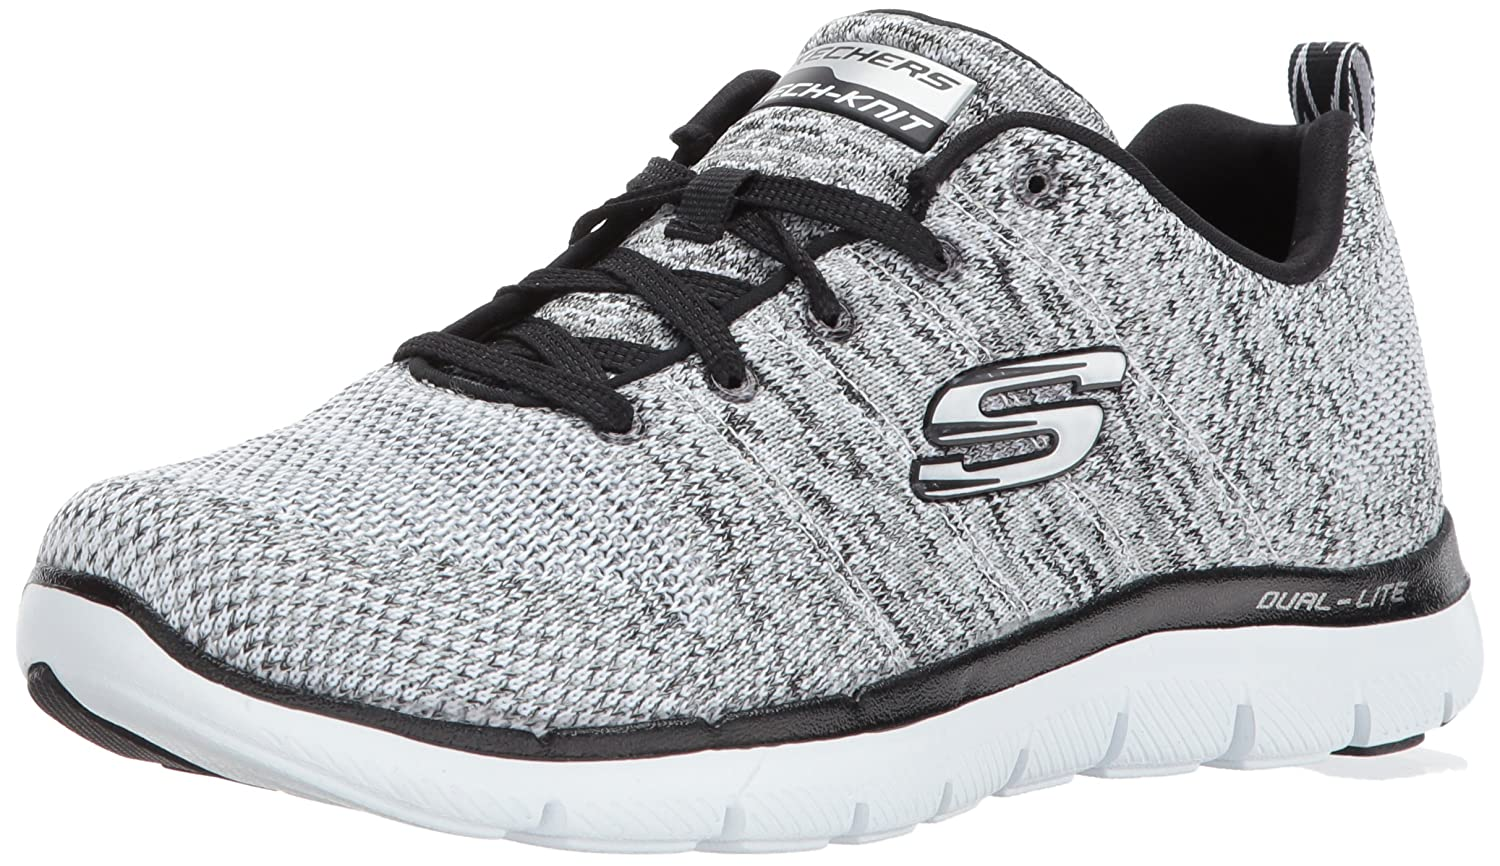 Skechers Women's Flex Appeal 2.0 Sneaker B01N4W0CE4 8.5 W US|White/Black